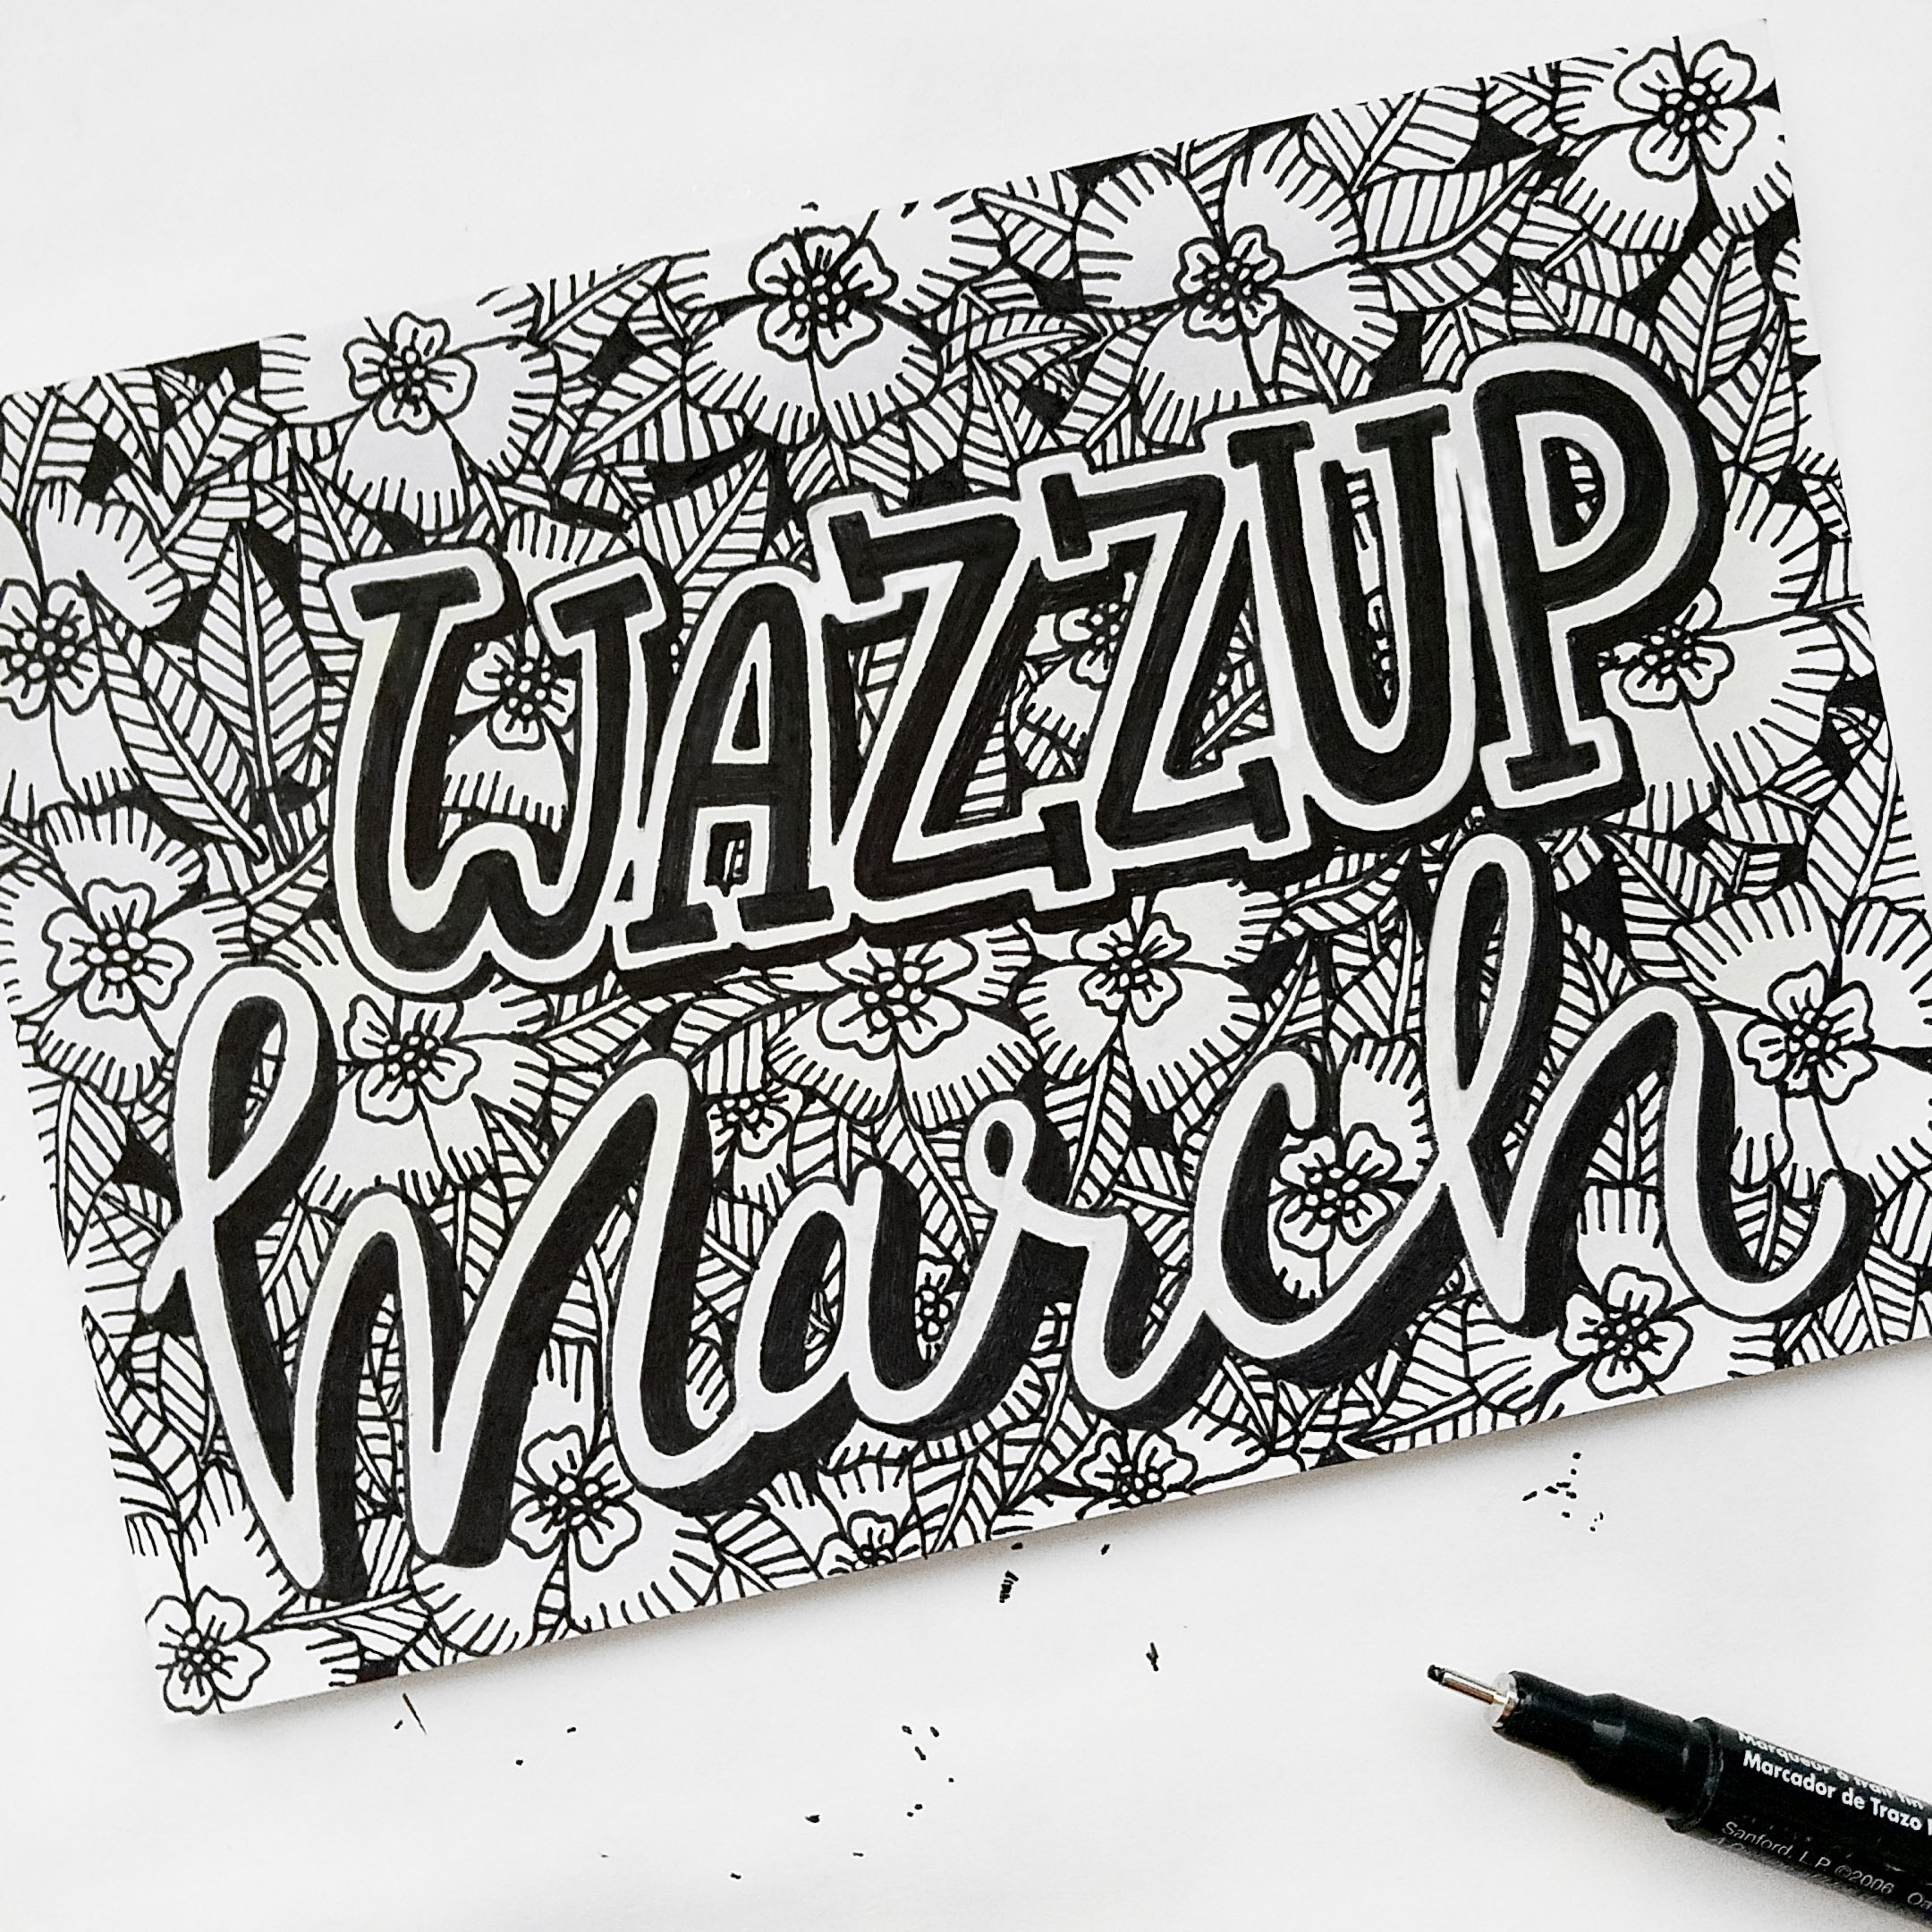 WAZZUP MARCH.jpg